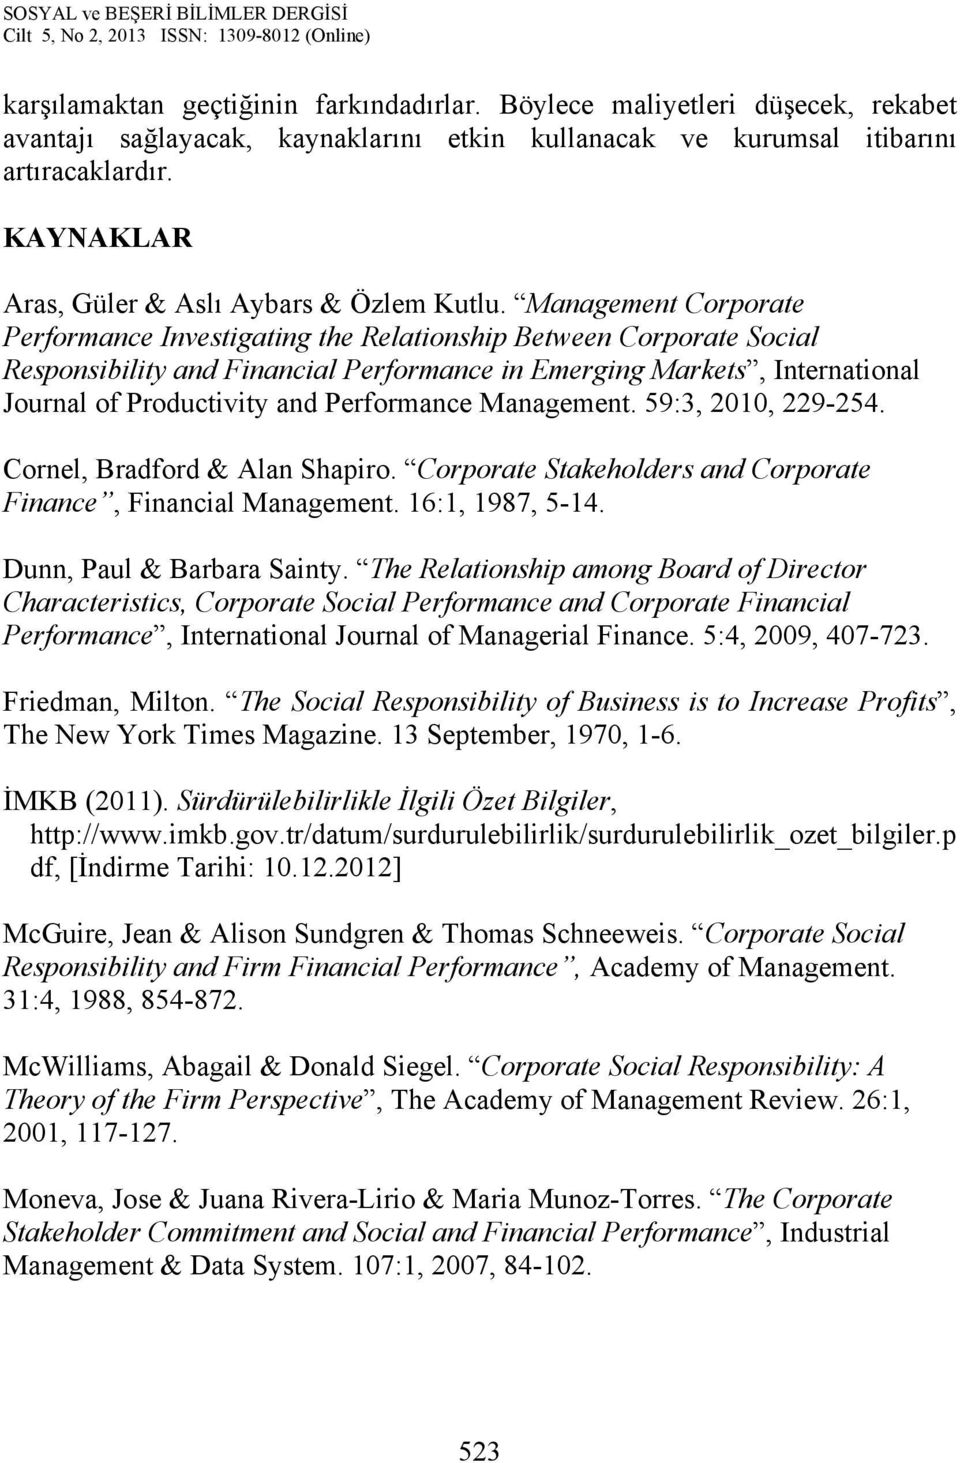 Management Corporate Performance Investigating the Relationship Between Corporate Social Responsibility and Financial Performance in Emerging Markets, International Journal of Productivity and